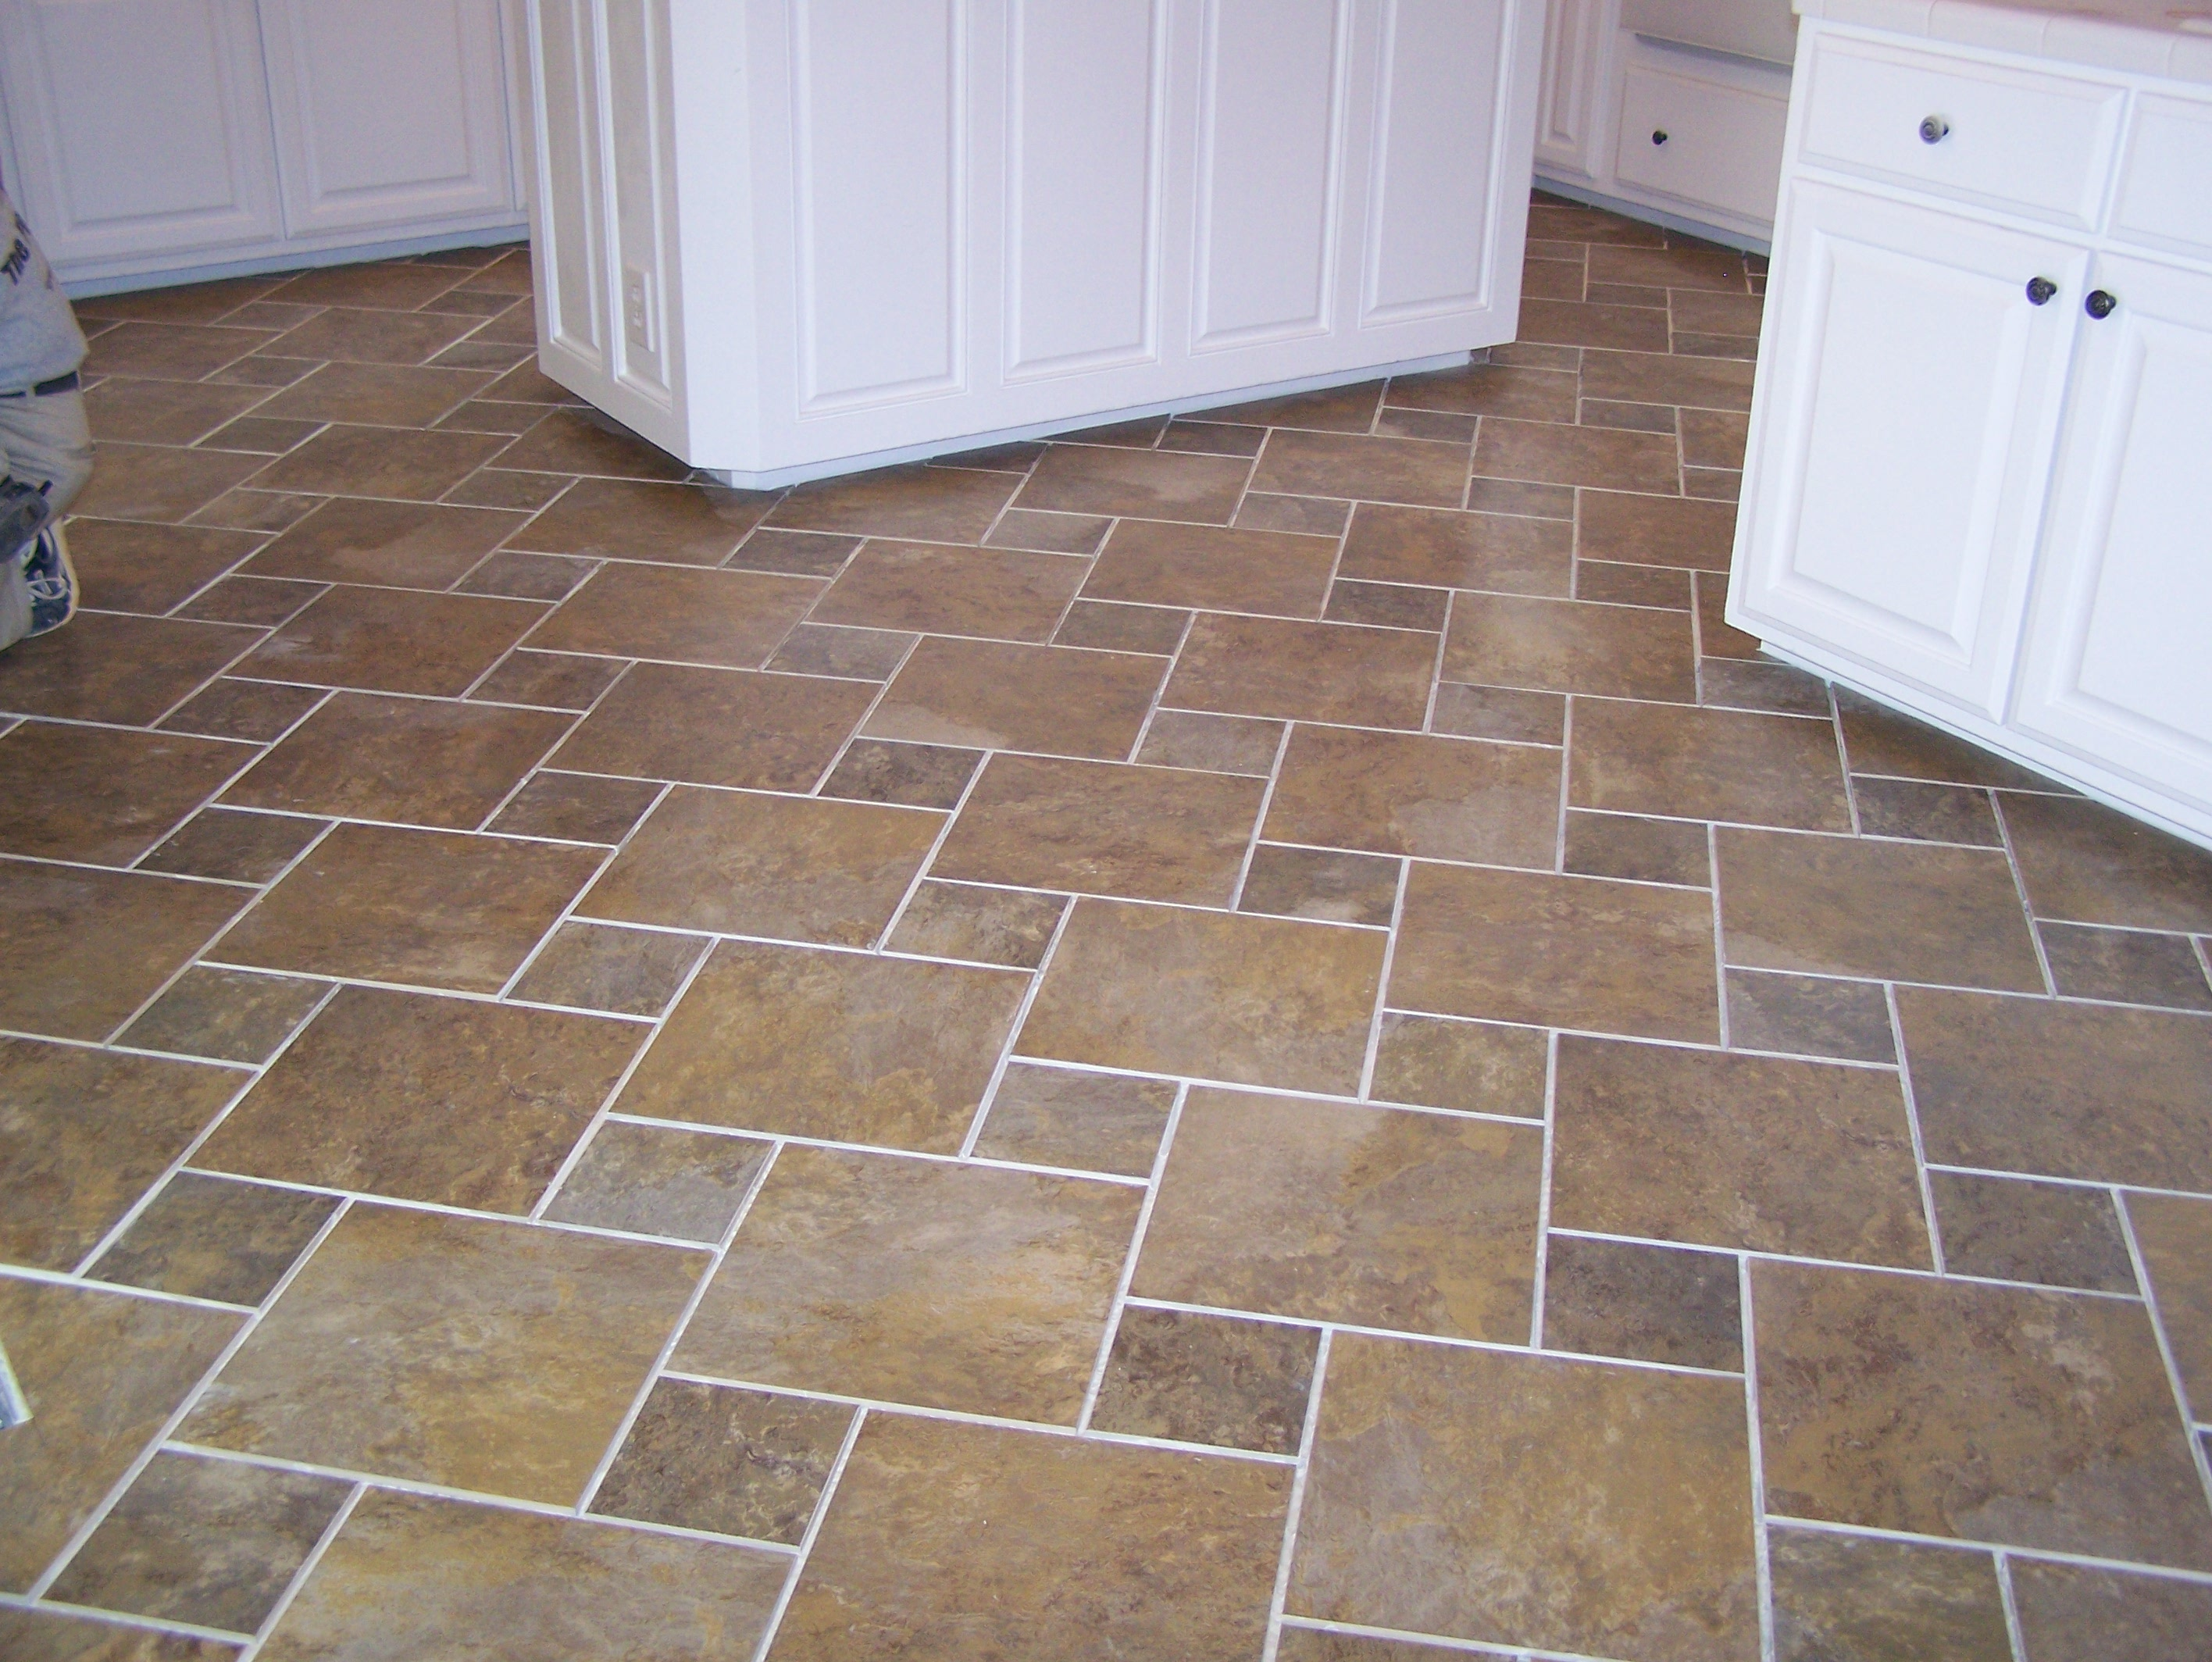 tile flooring designs kitchen floor tile designs Floor Tiles Design Ideas Additionally Kitchen